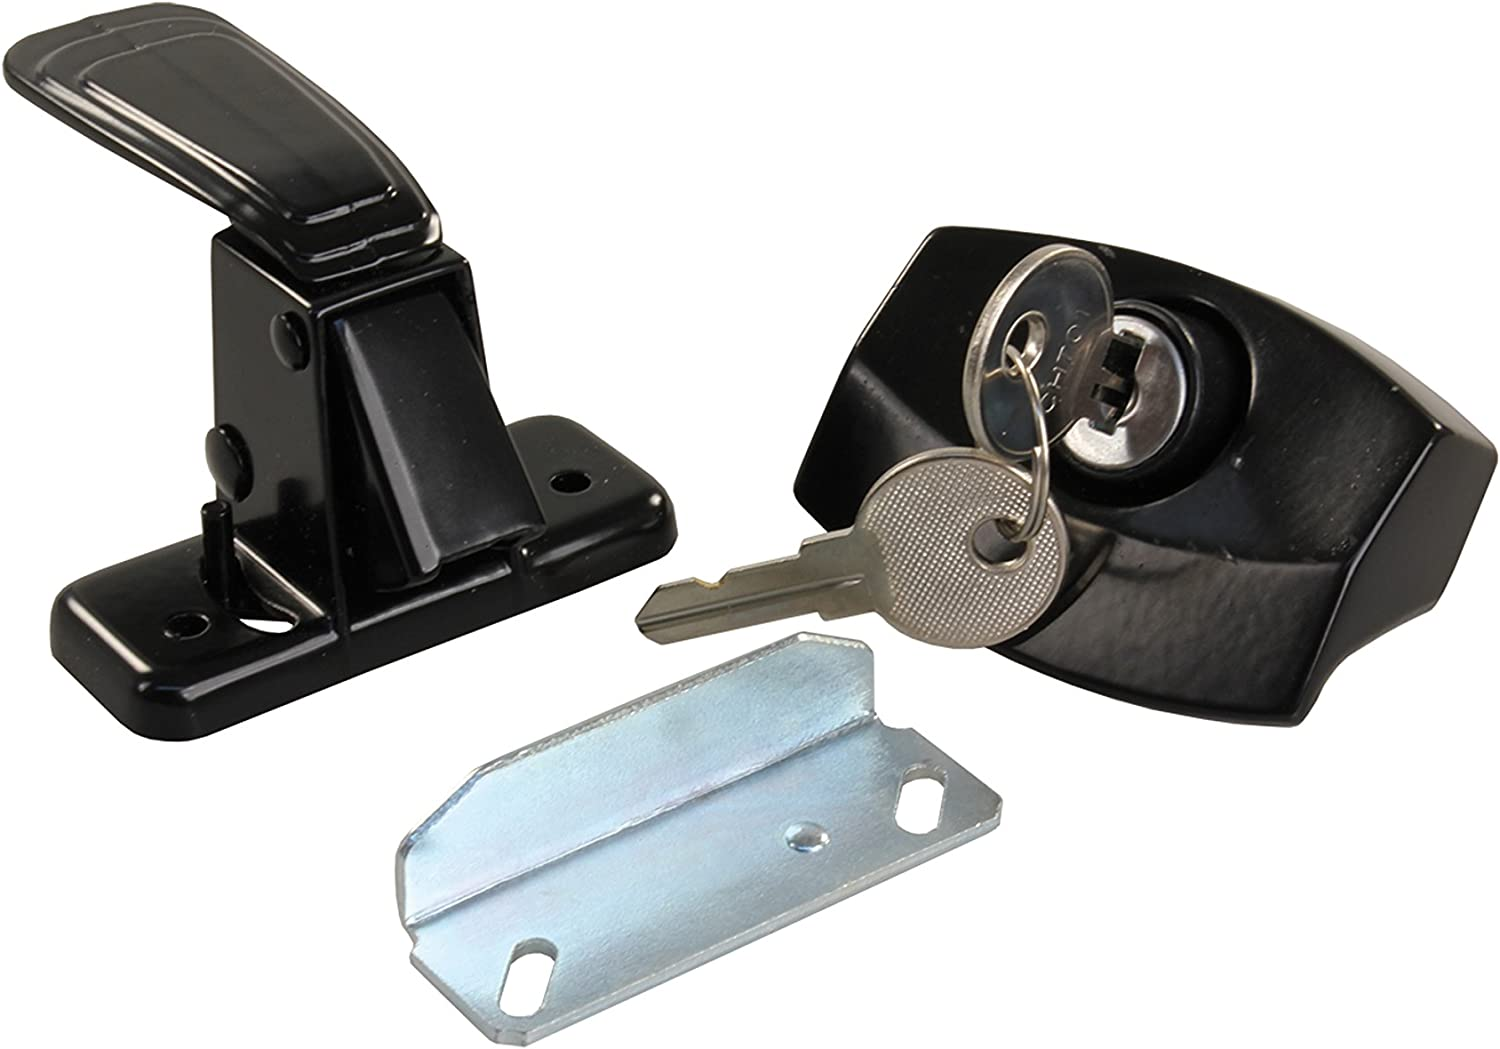 JR Direct sale of manufacturer Products 11675 Black Locking Camper Door Beauty products Latch